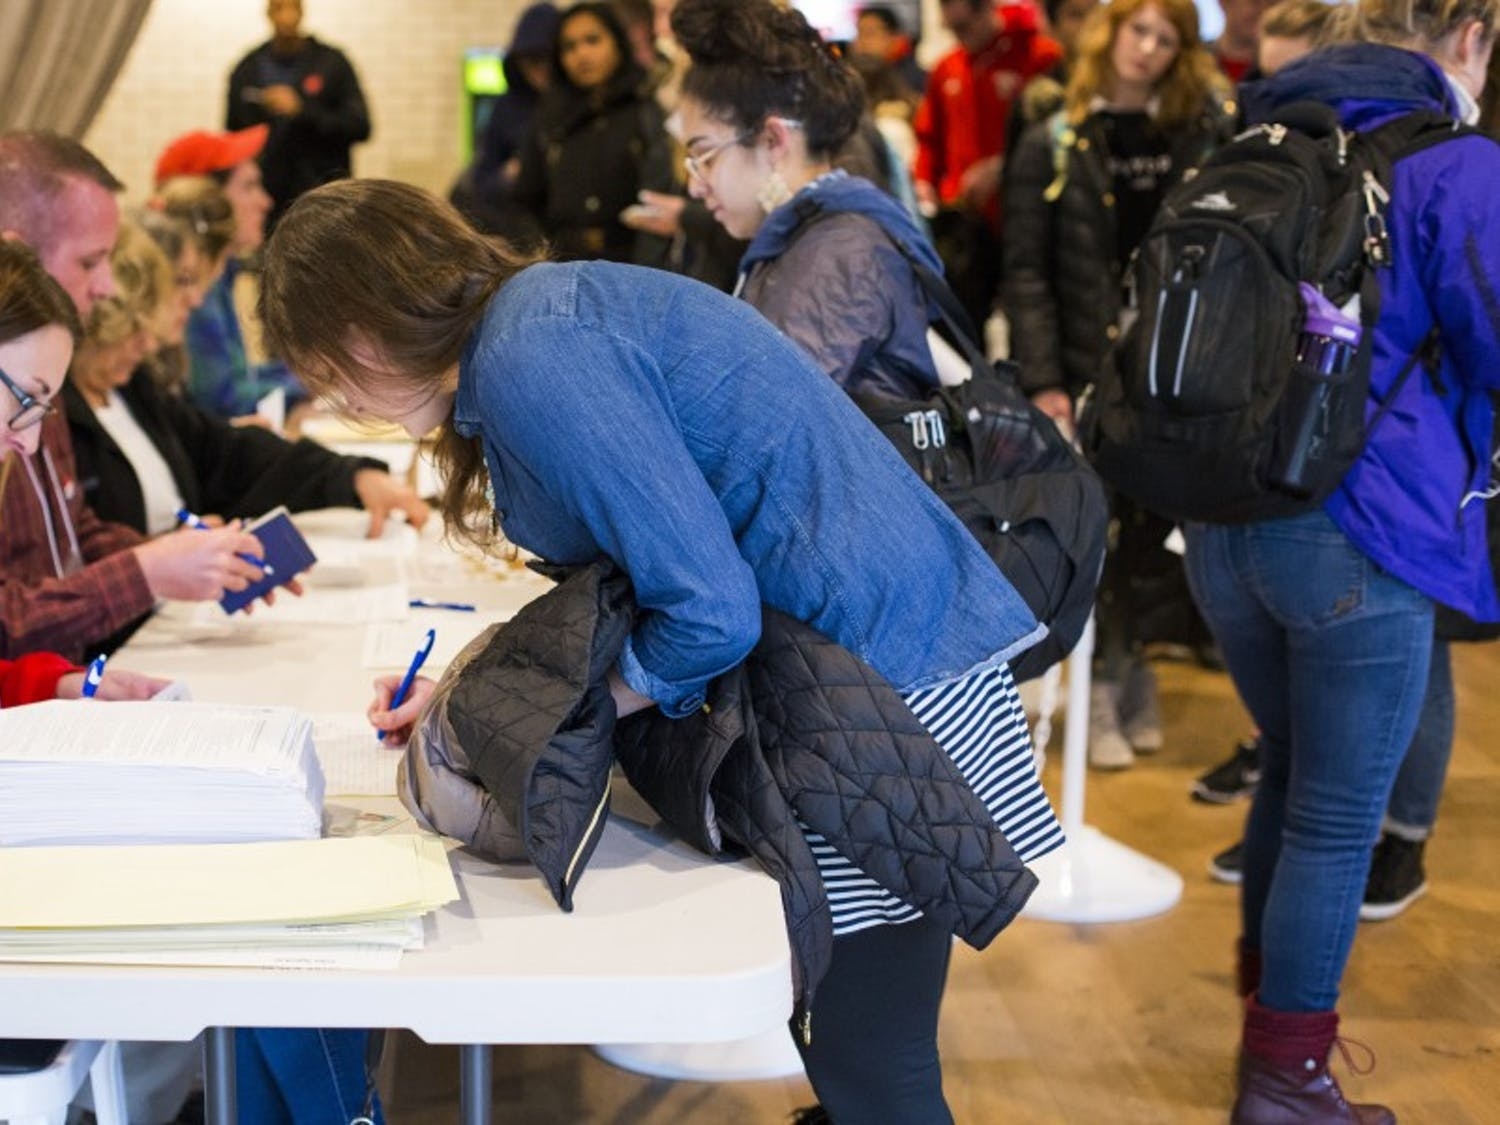 A narrow group of voters could be able to vote without IDs, after a ruling from a federal court Tuesday.